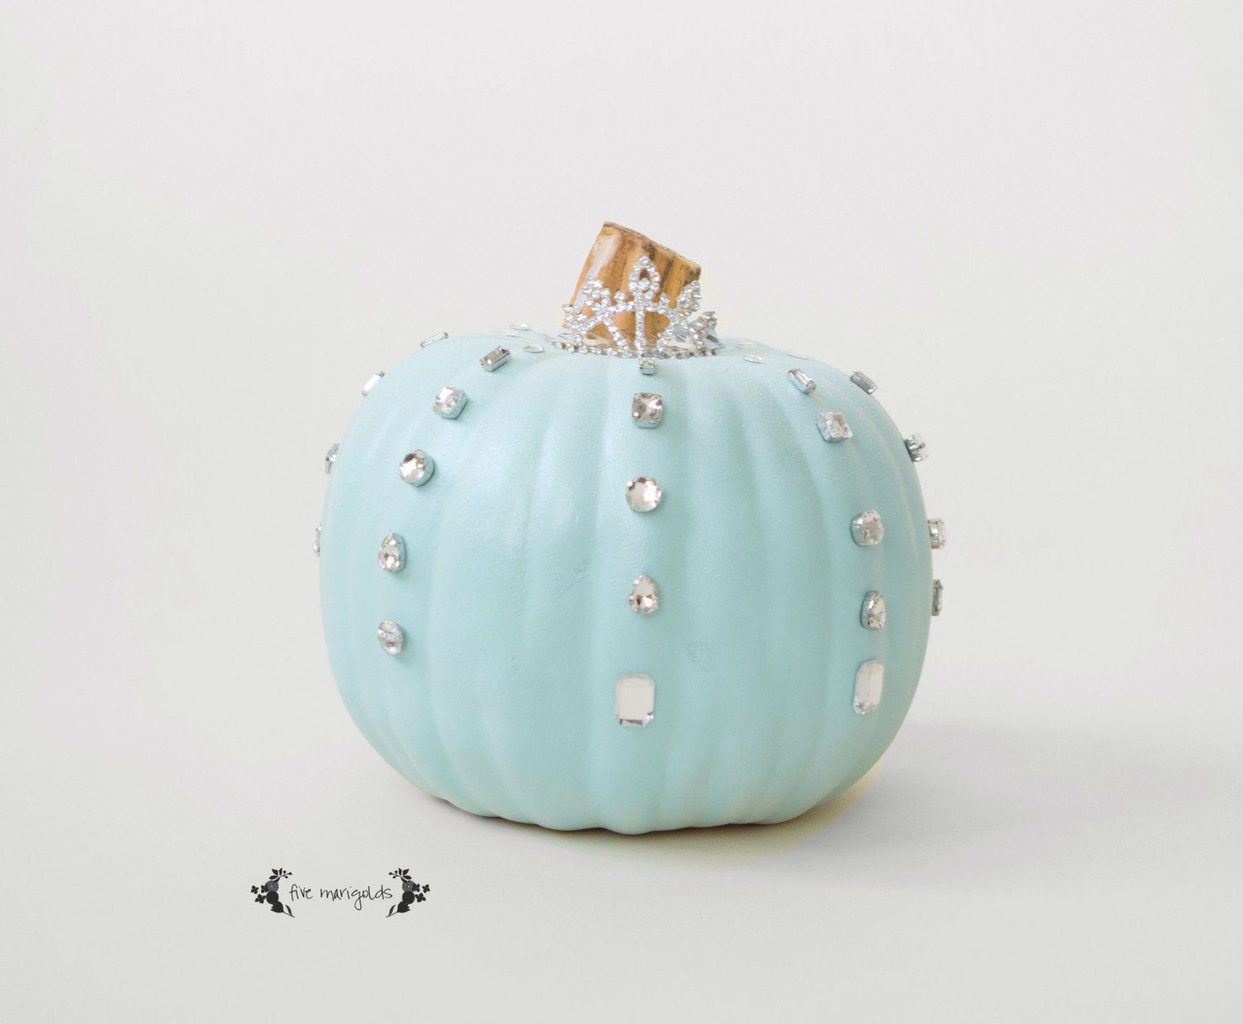 5 No-Carve Pumpkin Ideas that don't suck! This Cinderella / Frozen pumpkin is super easy to make!